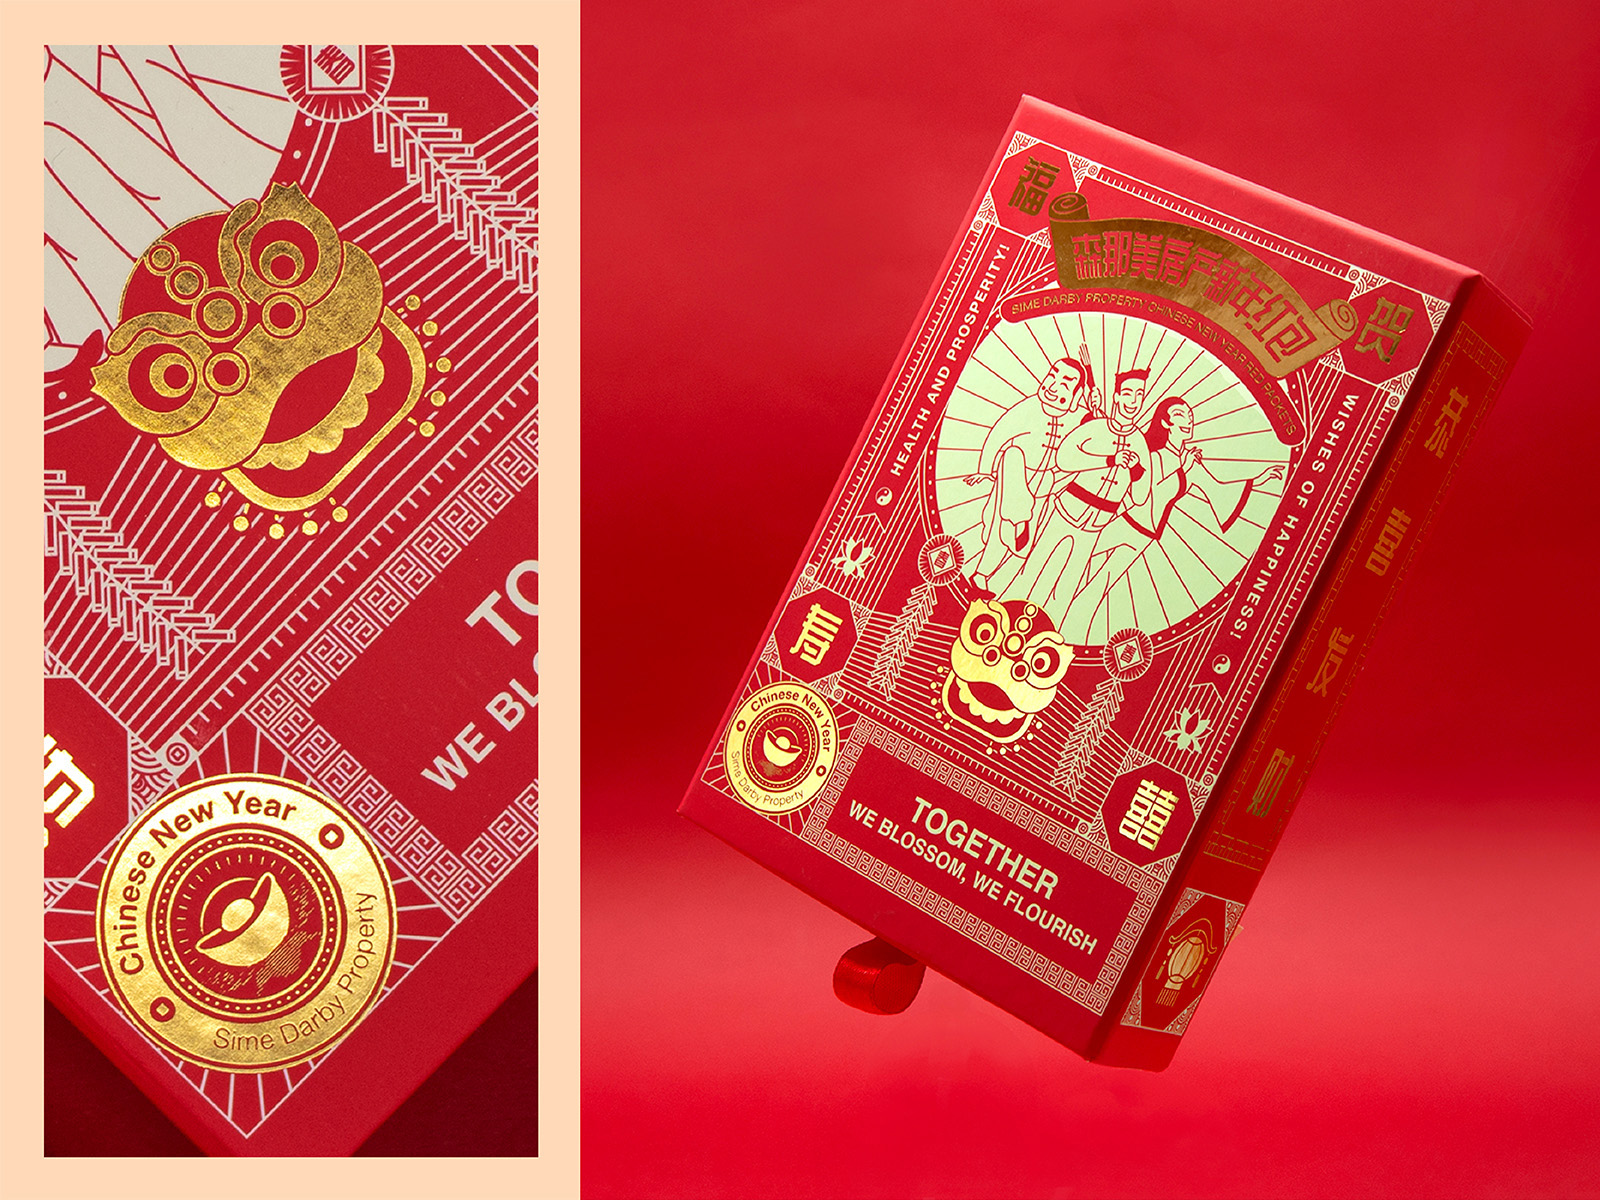 Sime Darby Chinese New Year 2020 red packet or ang pow packaging design, normal and gold foiling printing, with product photography